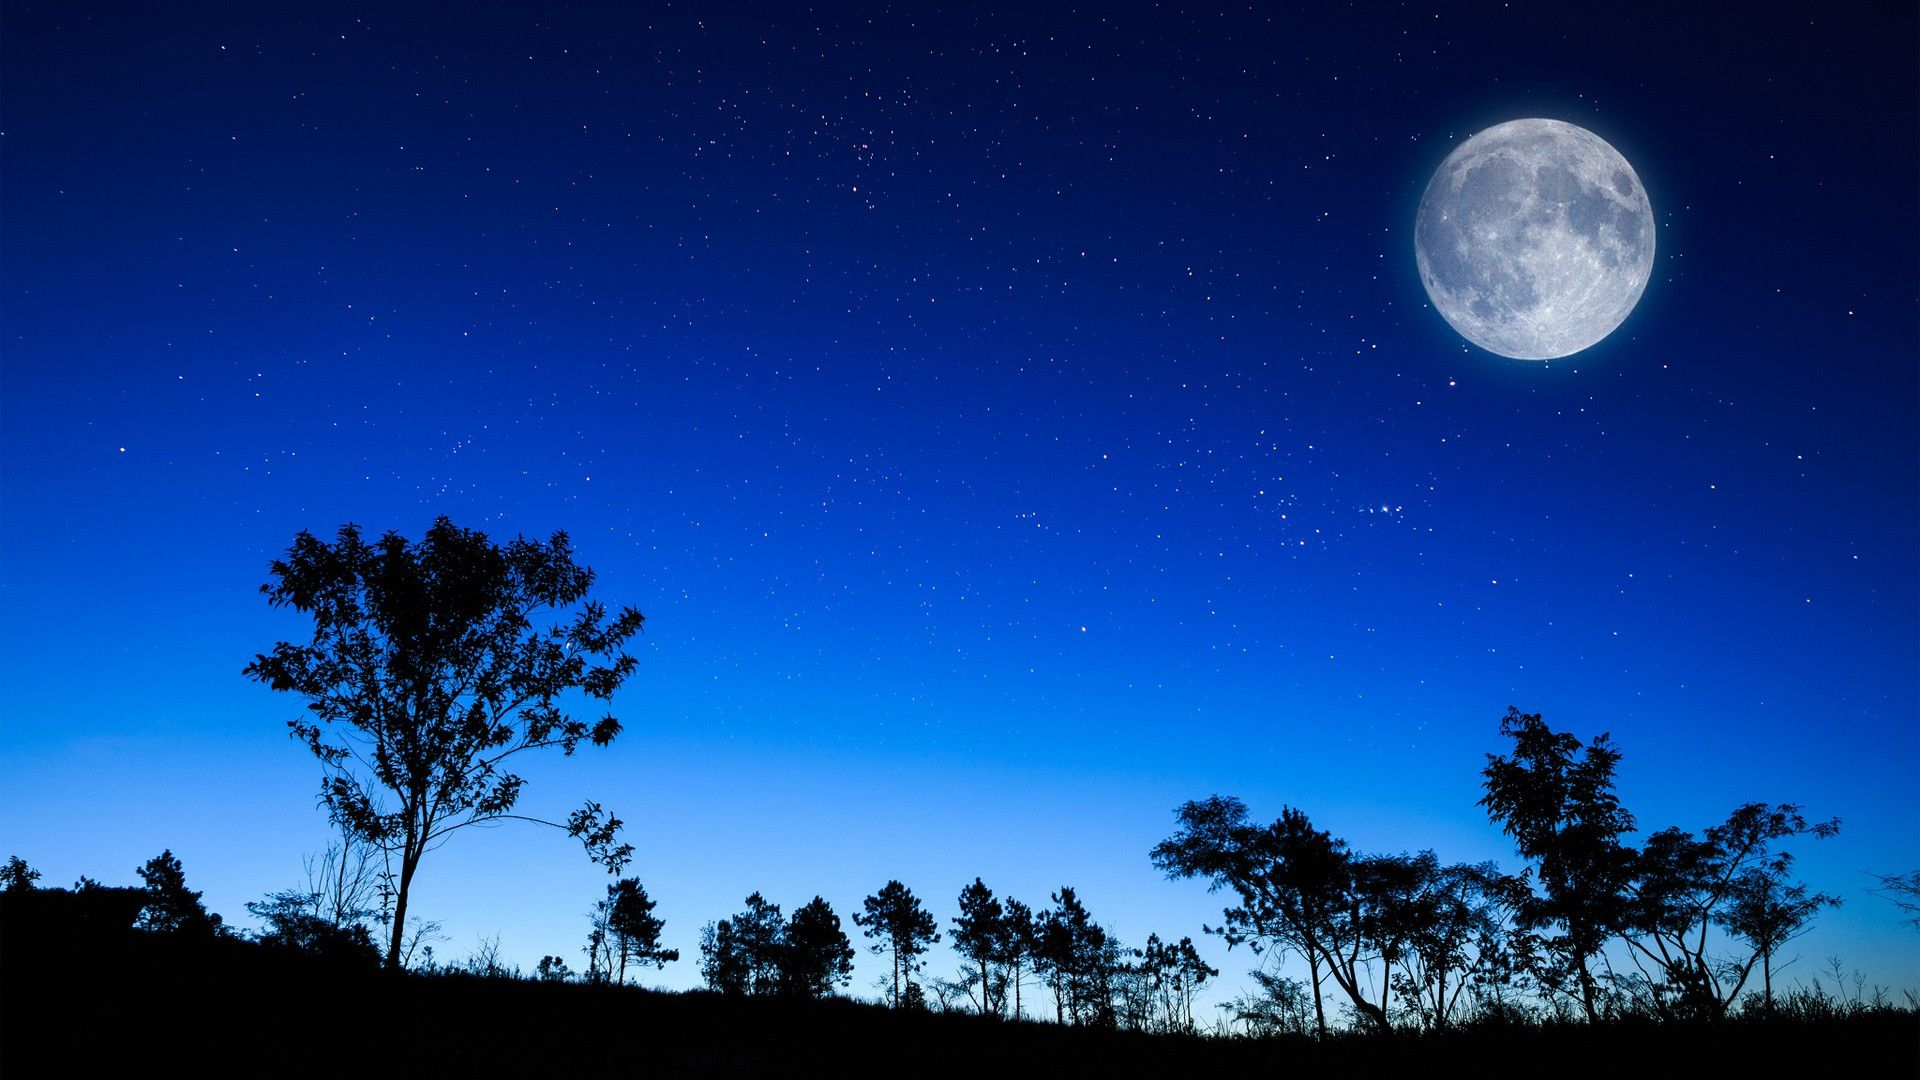 beautiful night sky with stars and moon - Google Search ...